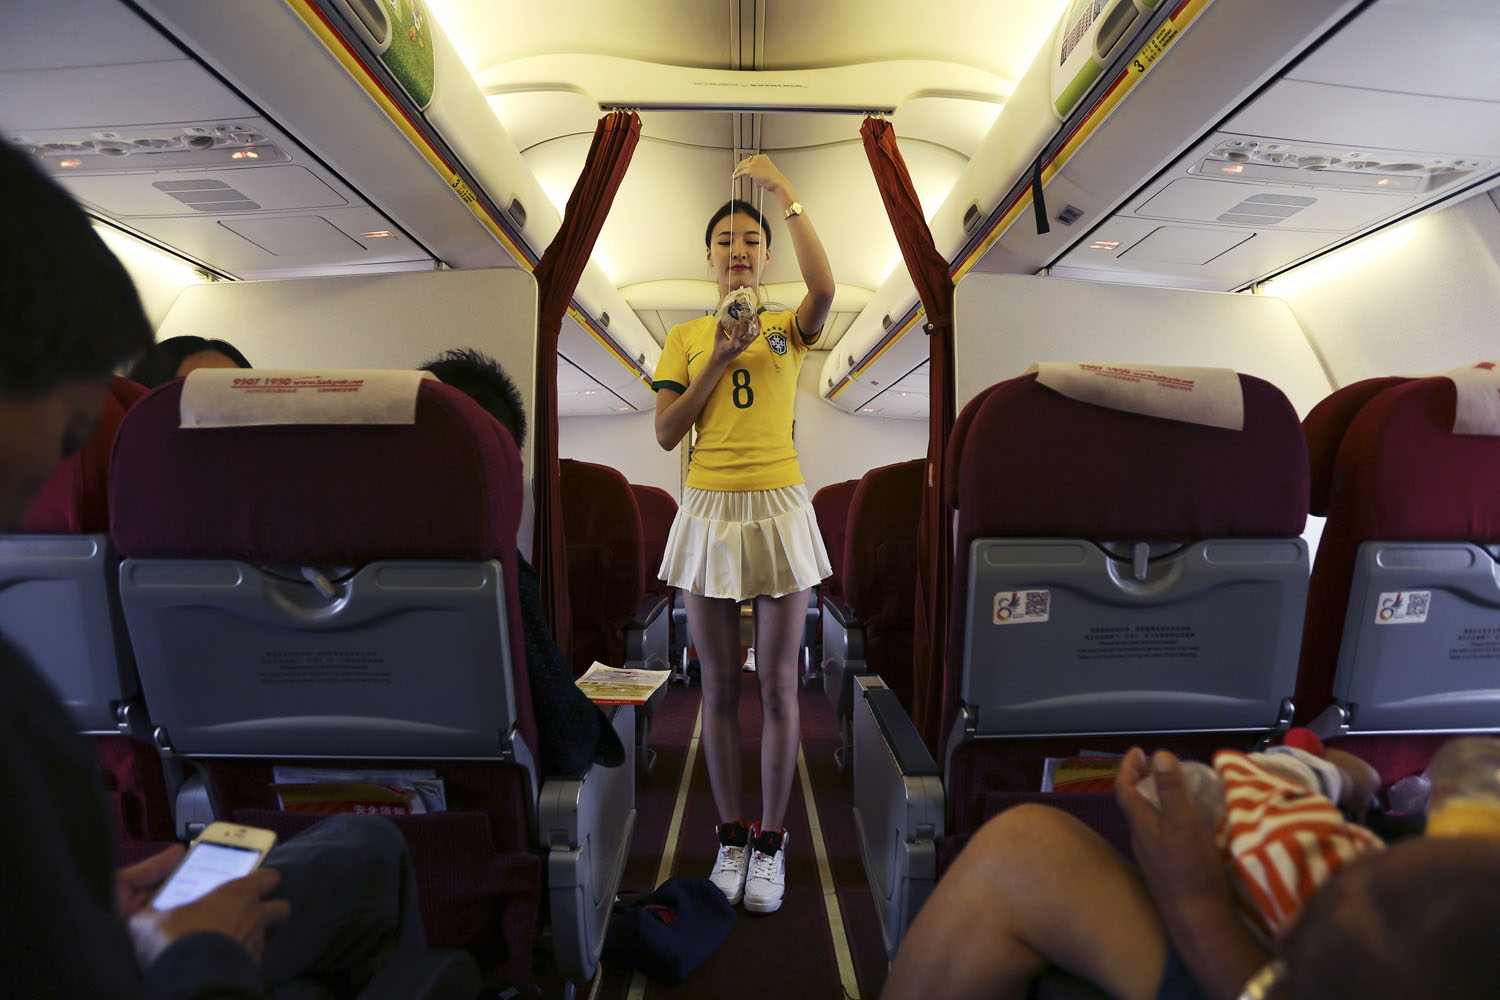 Jun.23, 2014. A flight attendant wearing a Brazil soccer team jersey demonstrates the emergency mask on an airplane traveling from Kunming to Hangzhou.